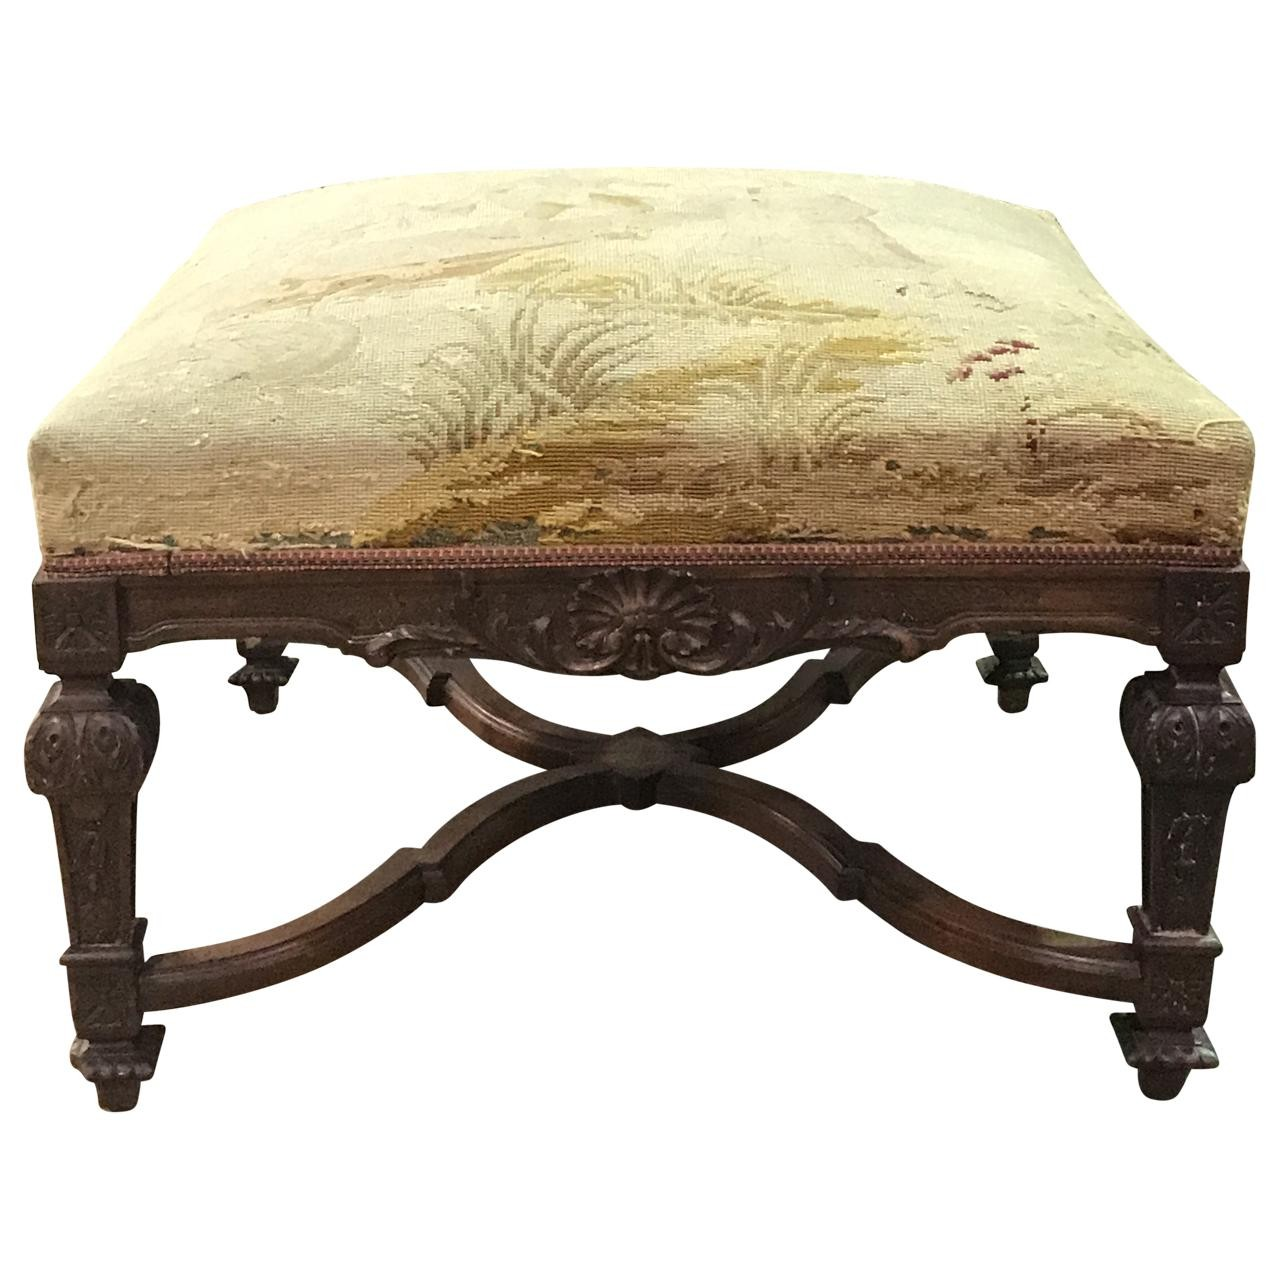 English Walnut Bench c. 1900 with needlepoint upholstery